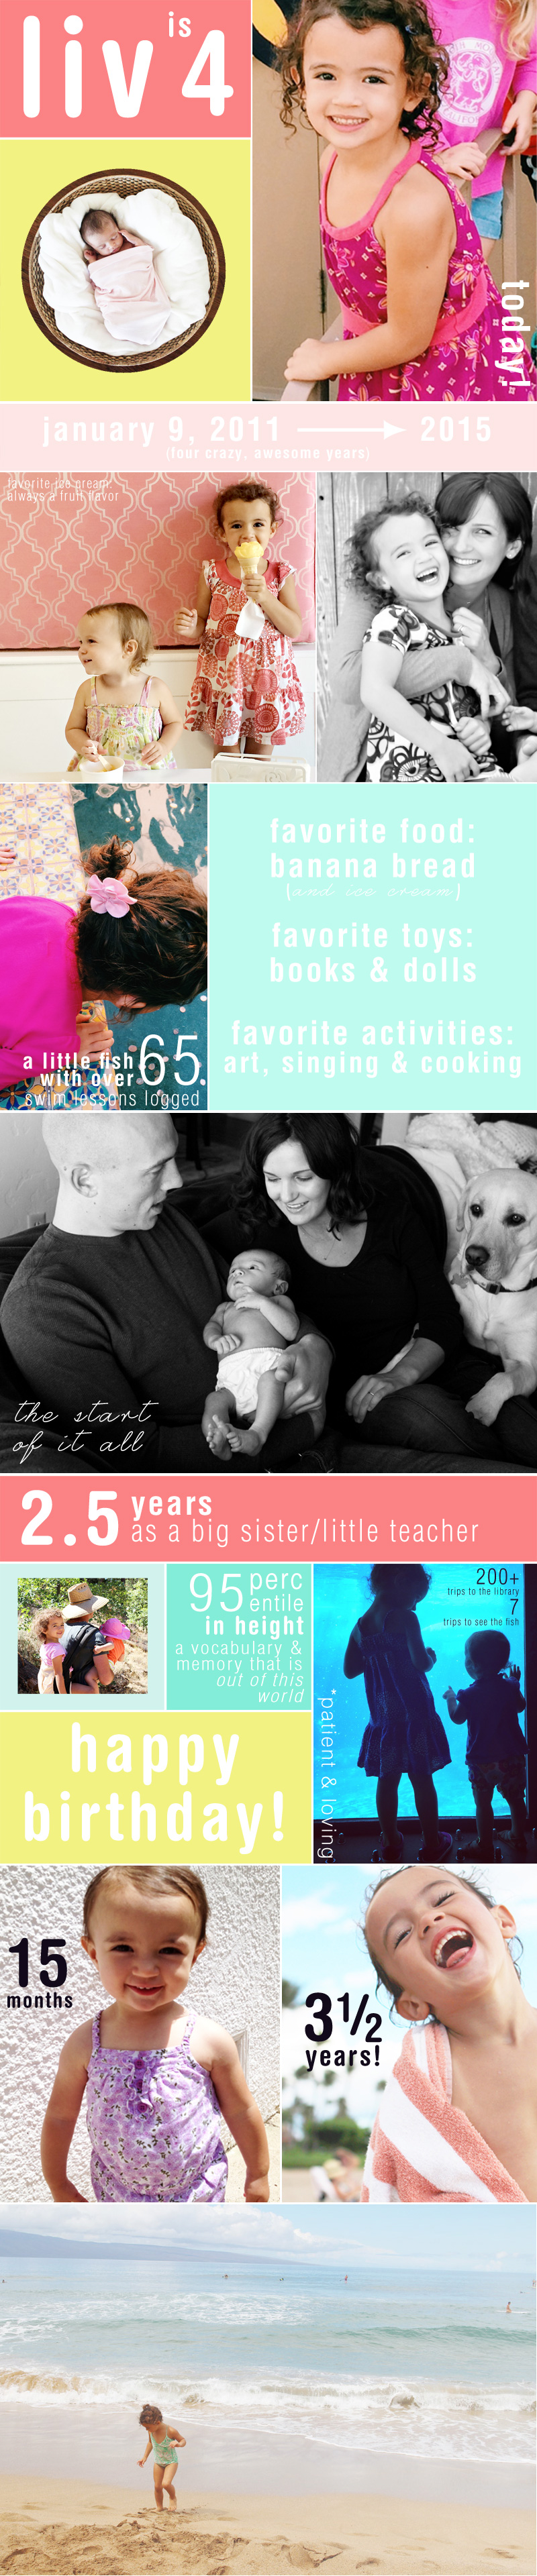 Happy 4th Birthday, Liv! An Infographic | PepperDesignBlog.com